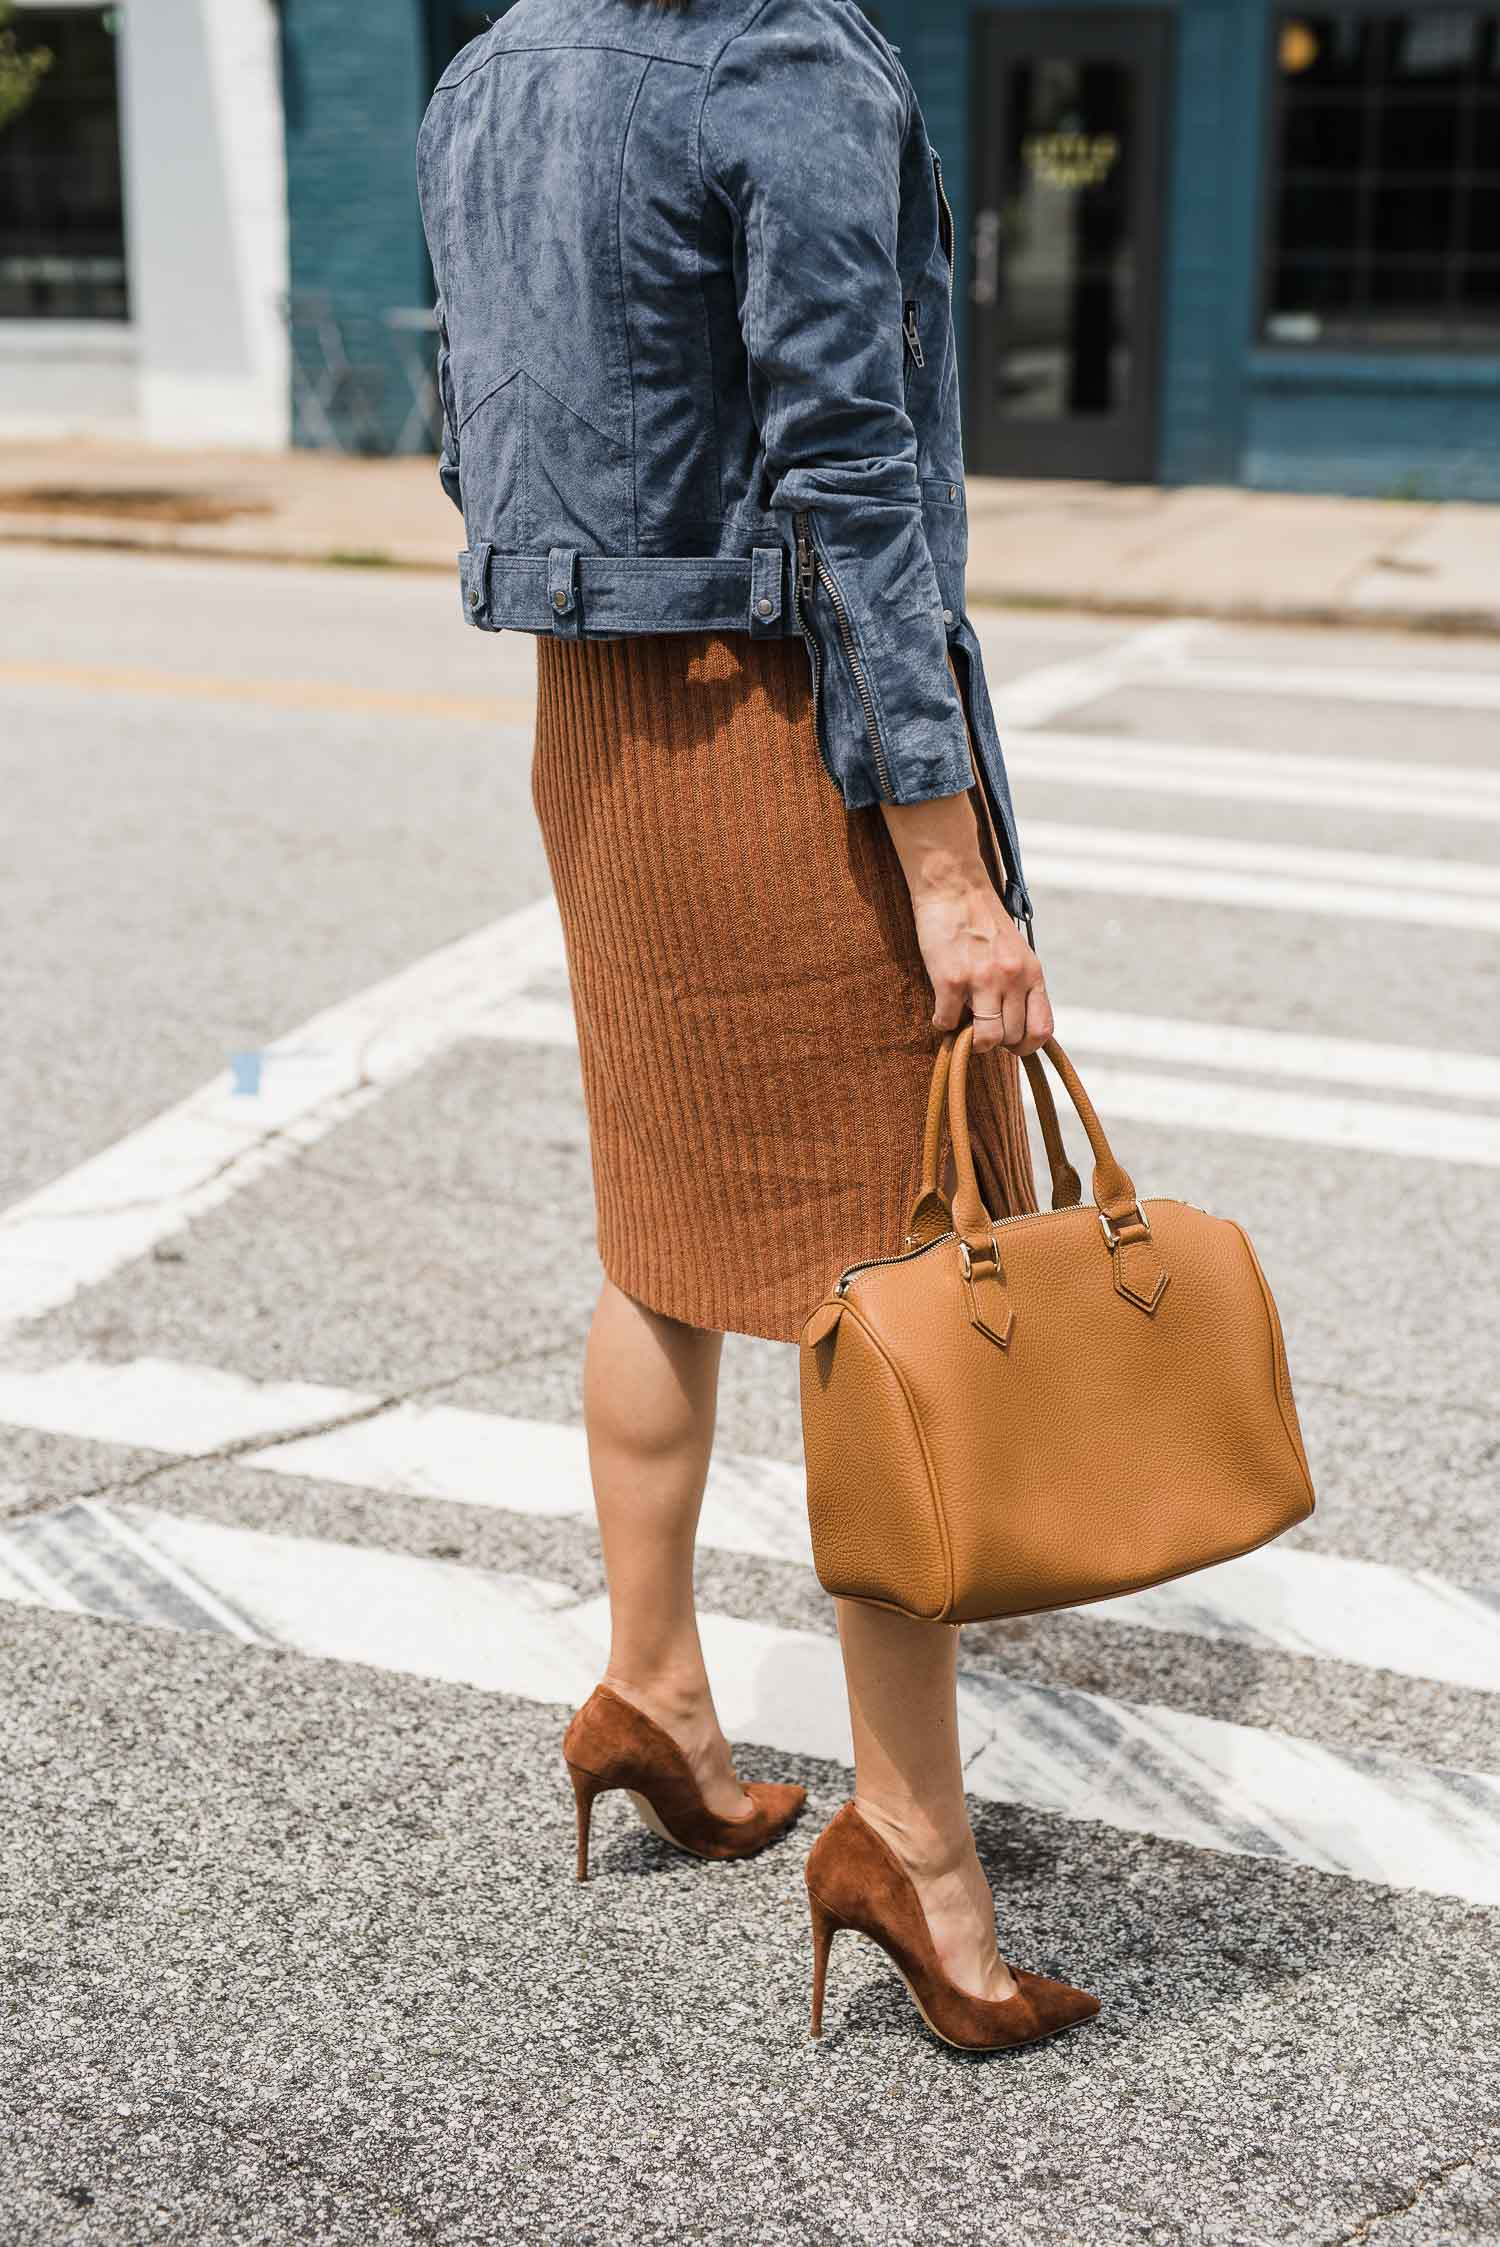 madewell insider event includes these shoes and this leather bag